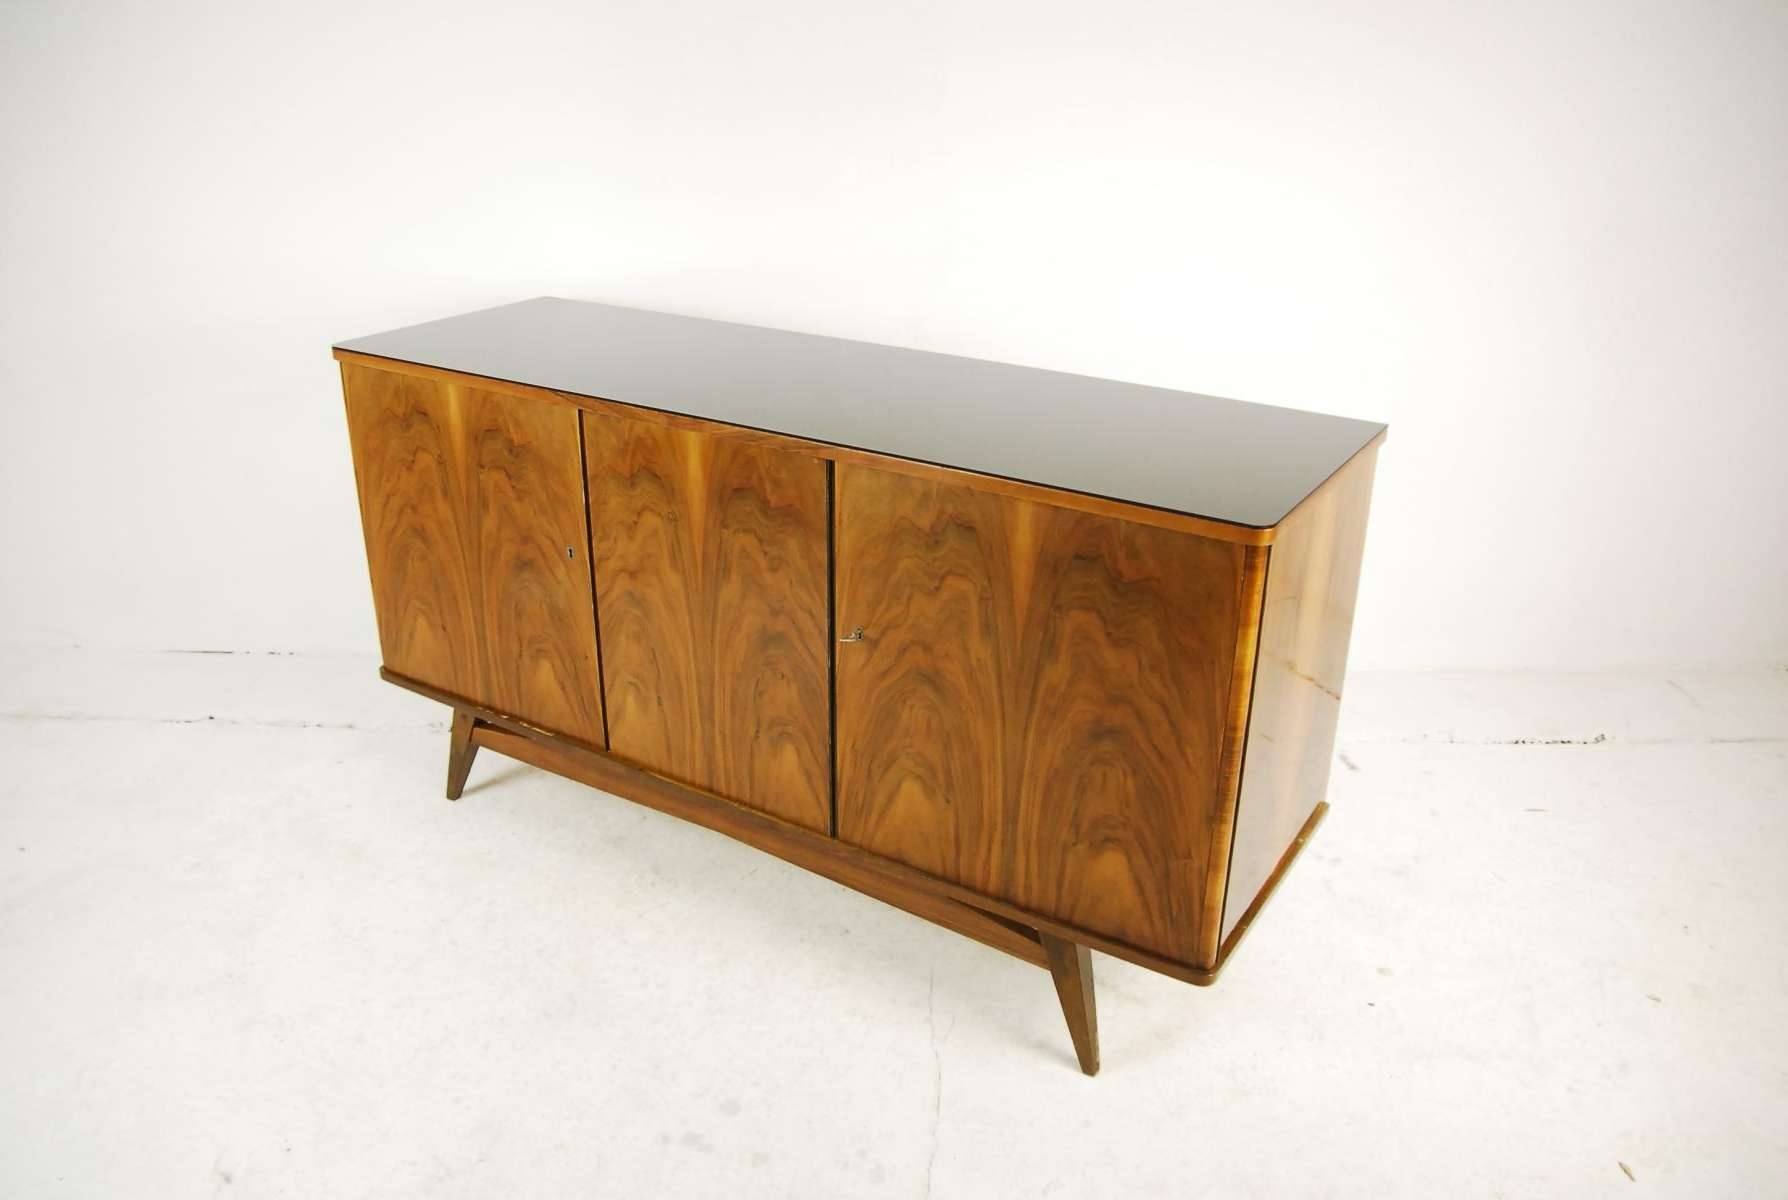 Beech Sideboard From Lodz Furniture Factory, 1960s For Sale At Pamono Throughout Beech Sideboards (View 7 of 20)